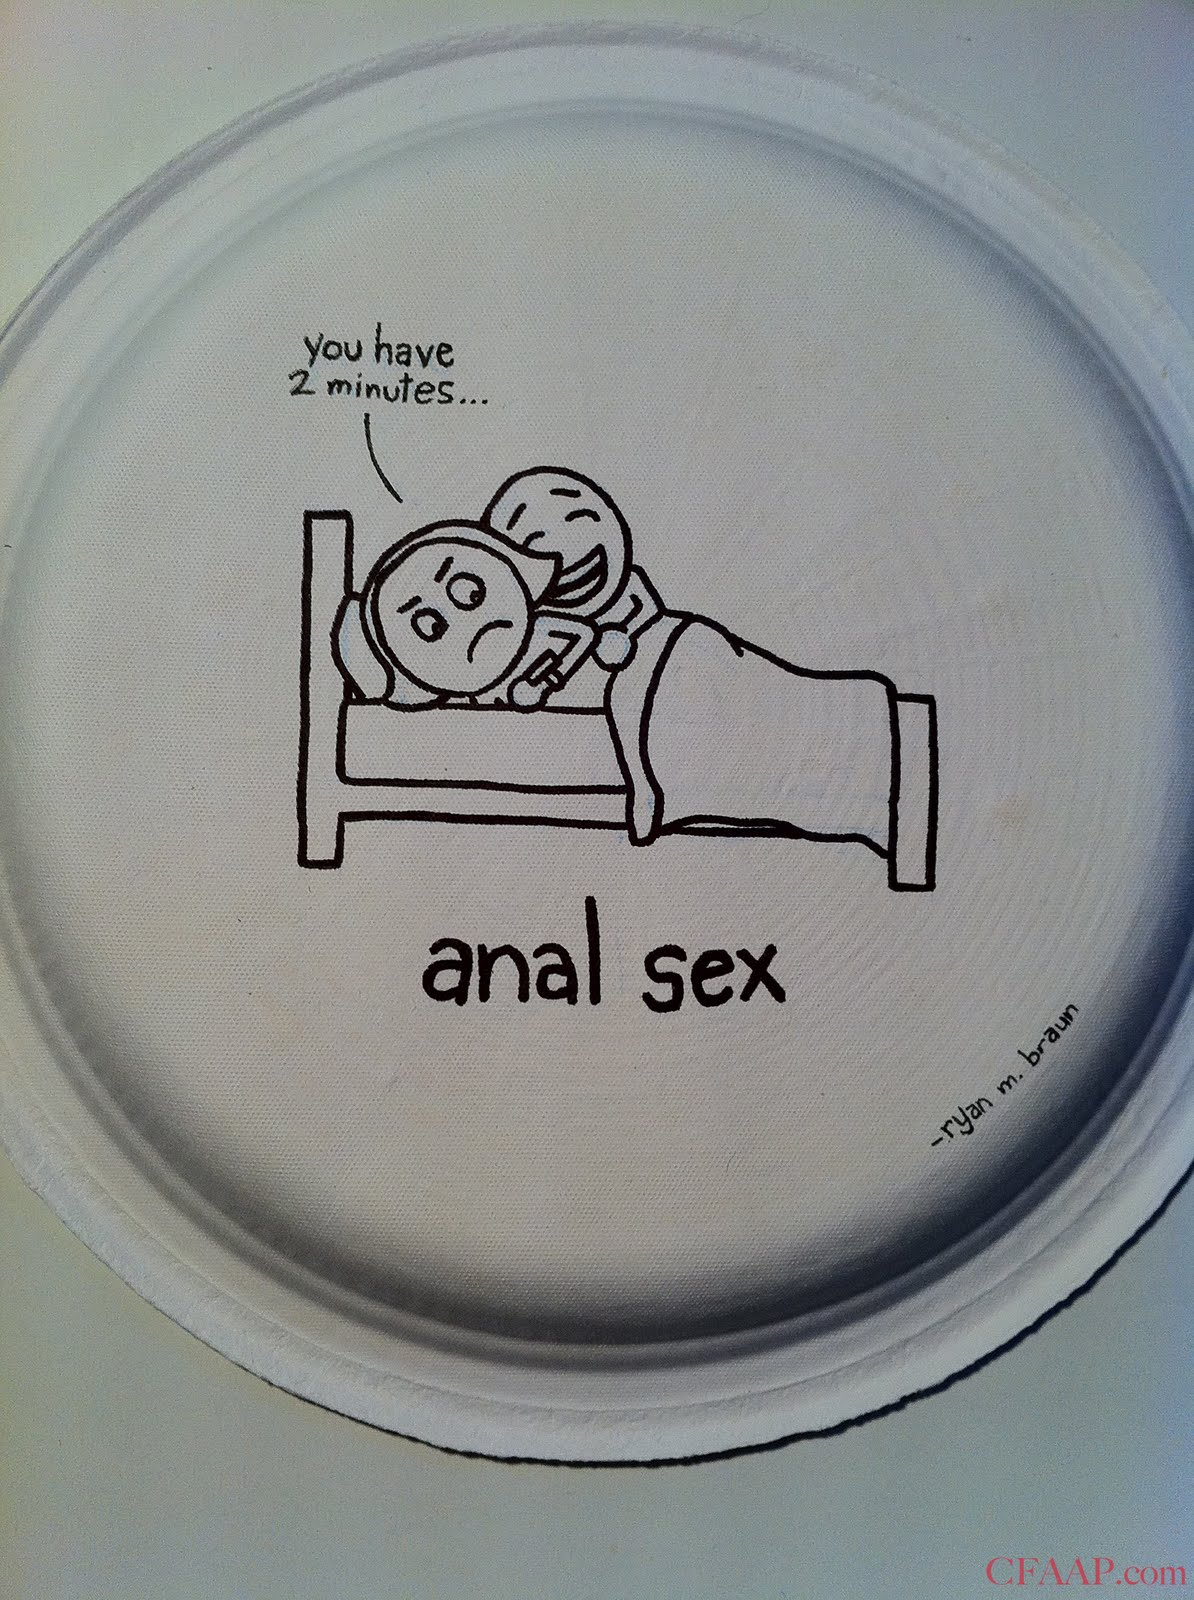 This is the first time in my life I've disposed of a plate via anal sex.